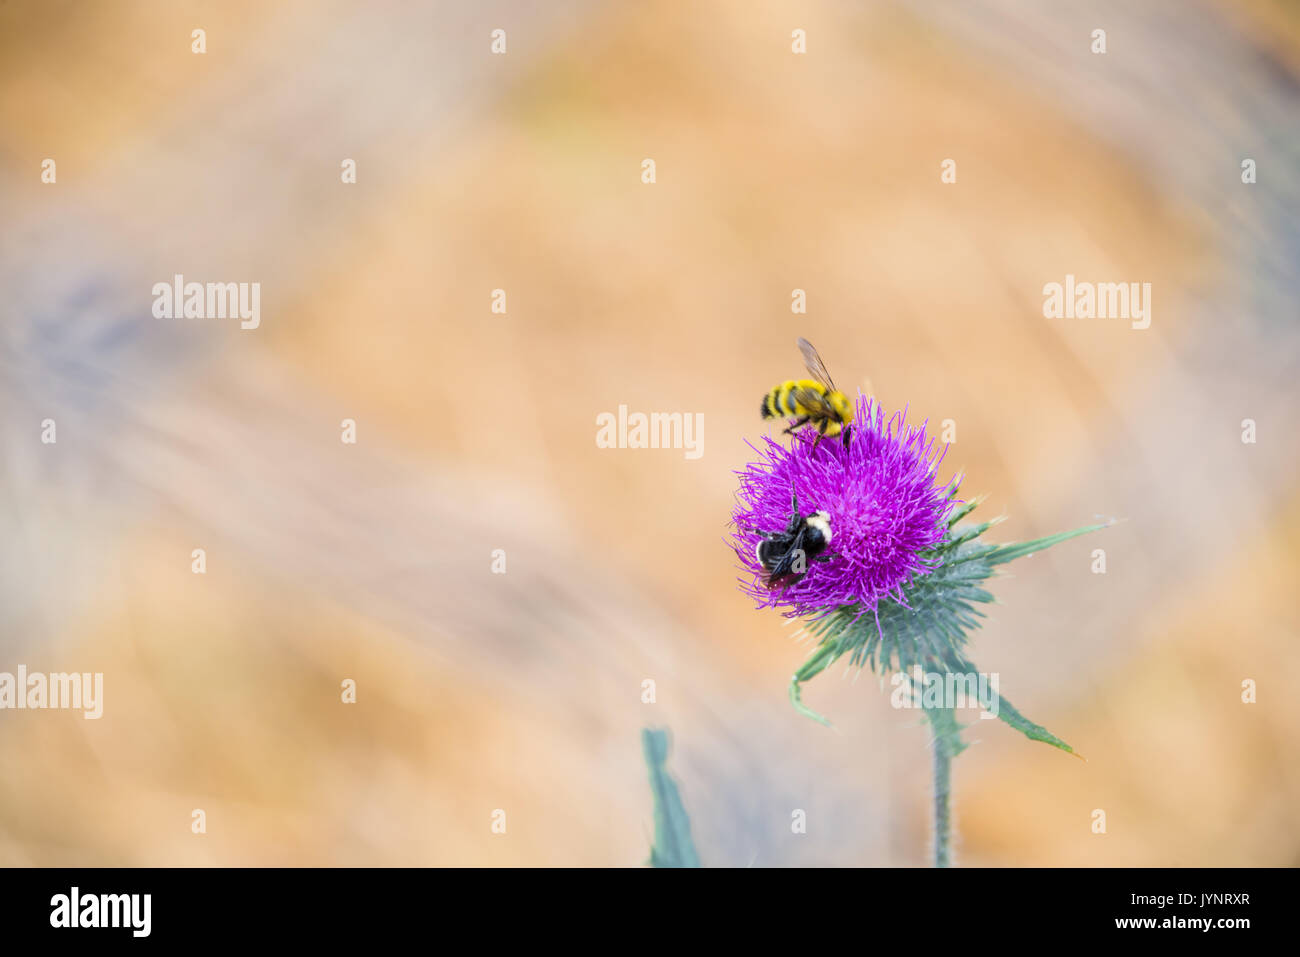 Two Bees and Pollen on Purple Thistle Flower - Stock Image